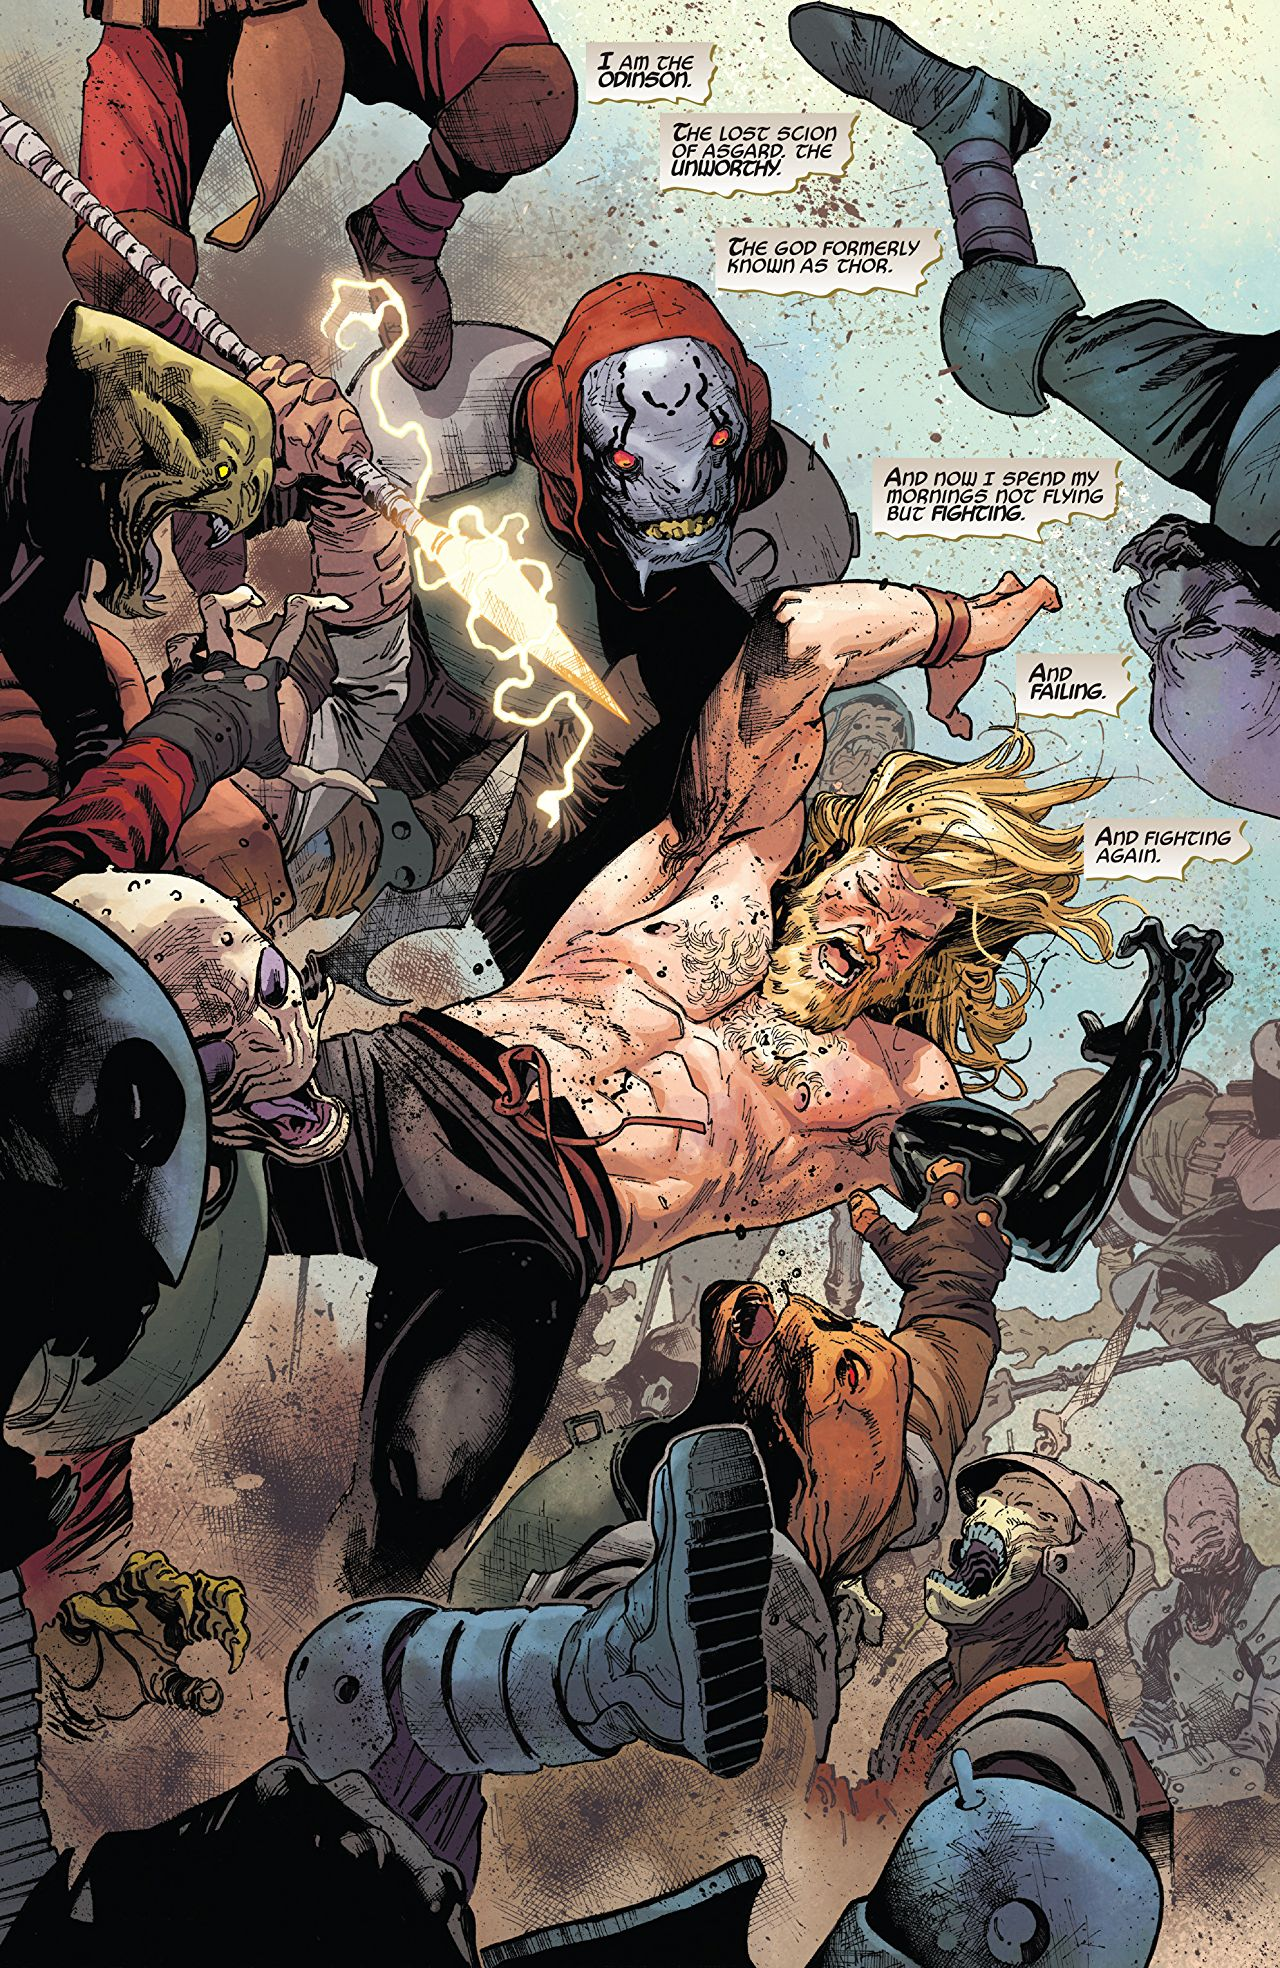 Now this? The Unworthy Thor? This is a character change from Marvel I can get behind 100%.